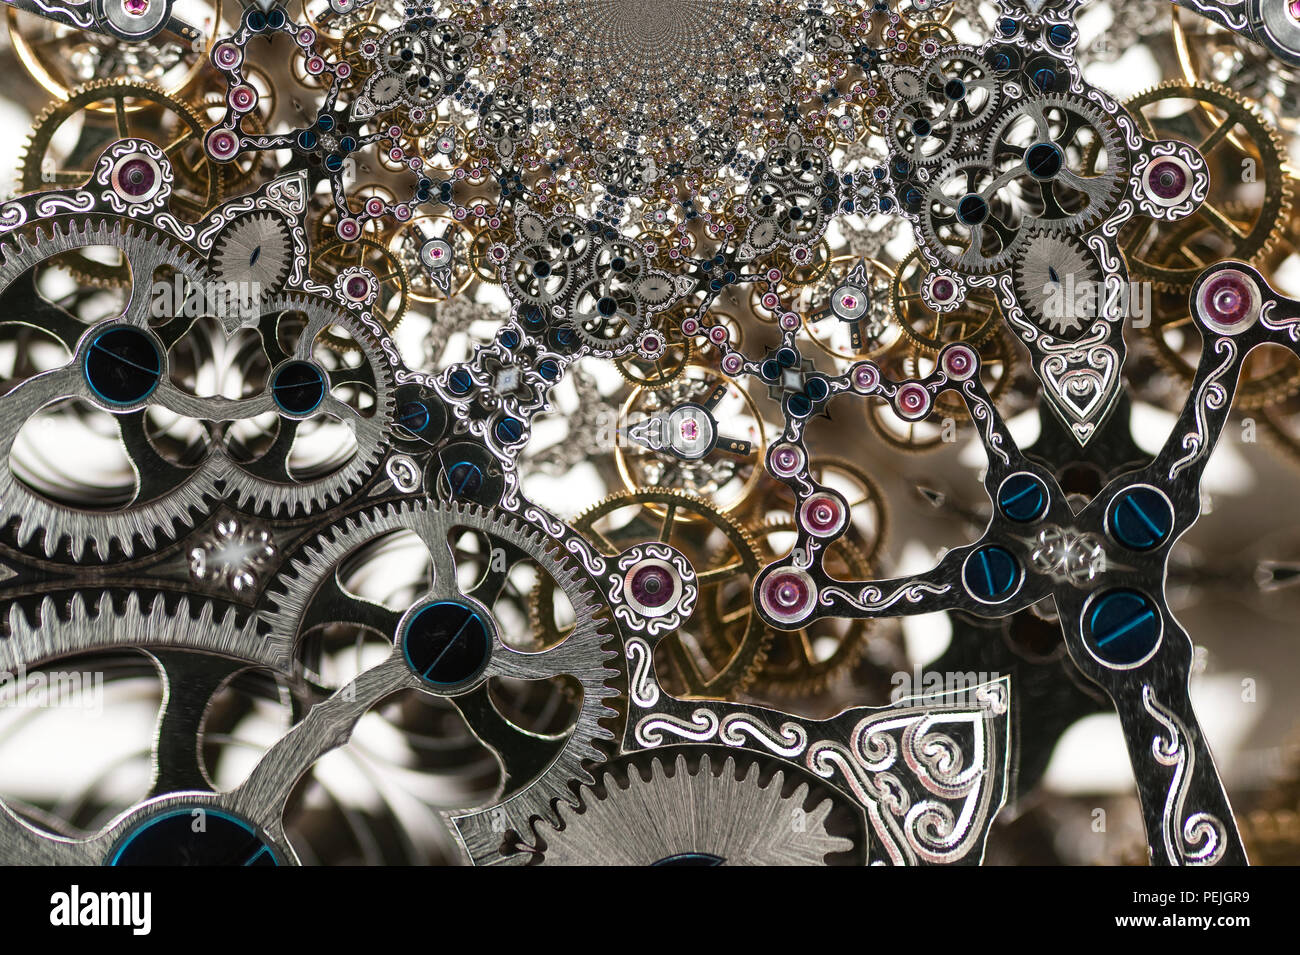 Kaleidoscopic Pattern of a Clockwork, based on own Reference Image - Stock Image